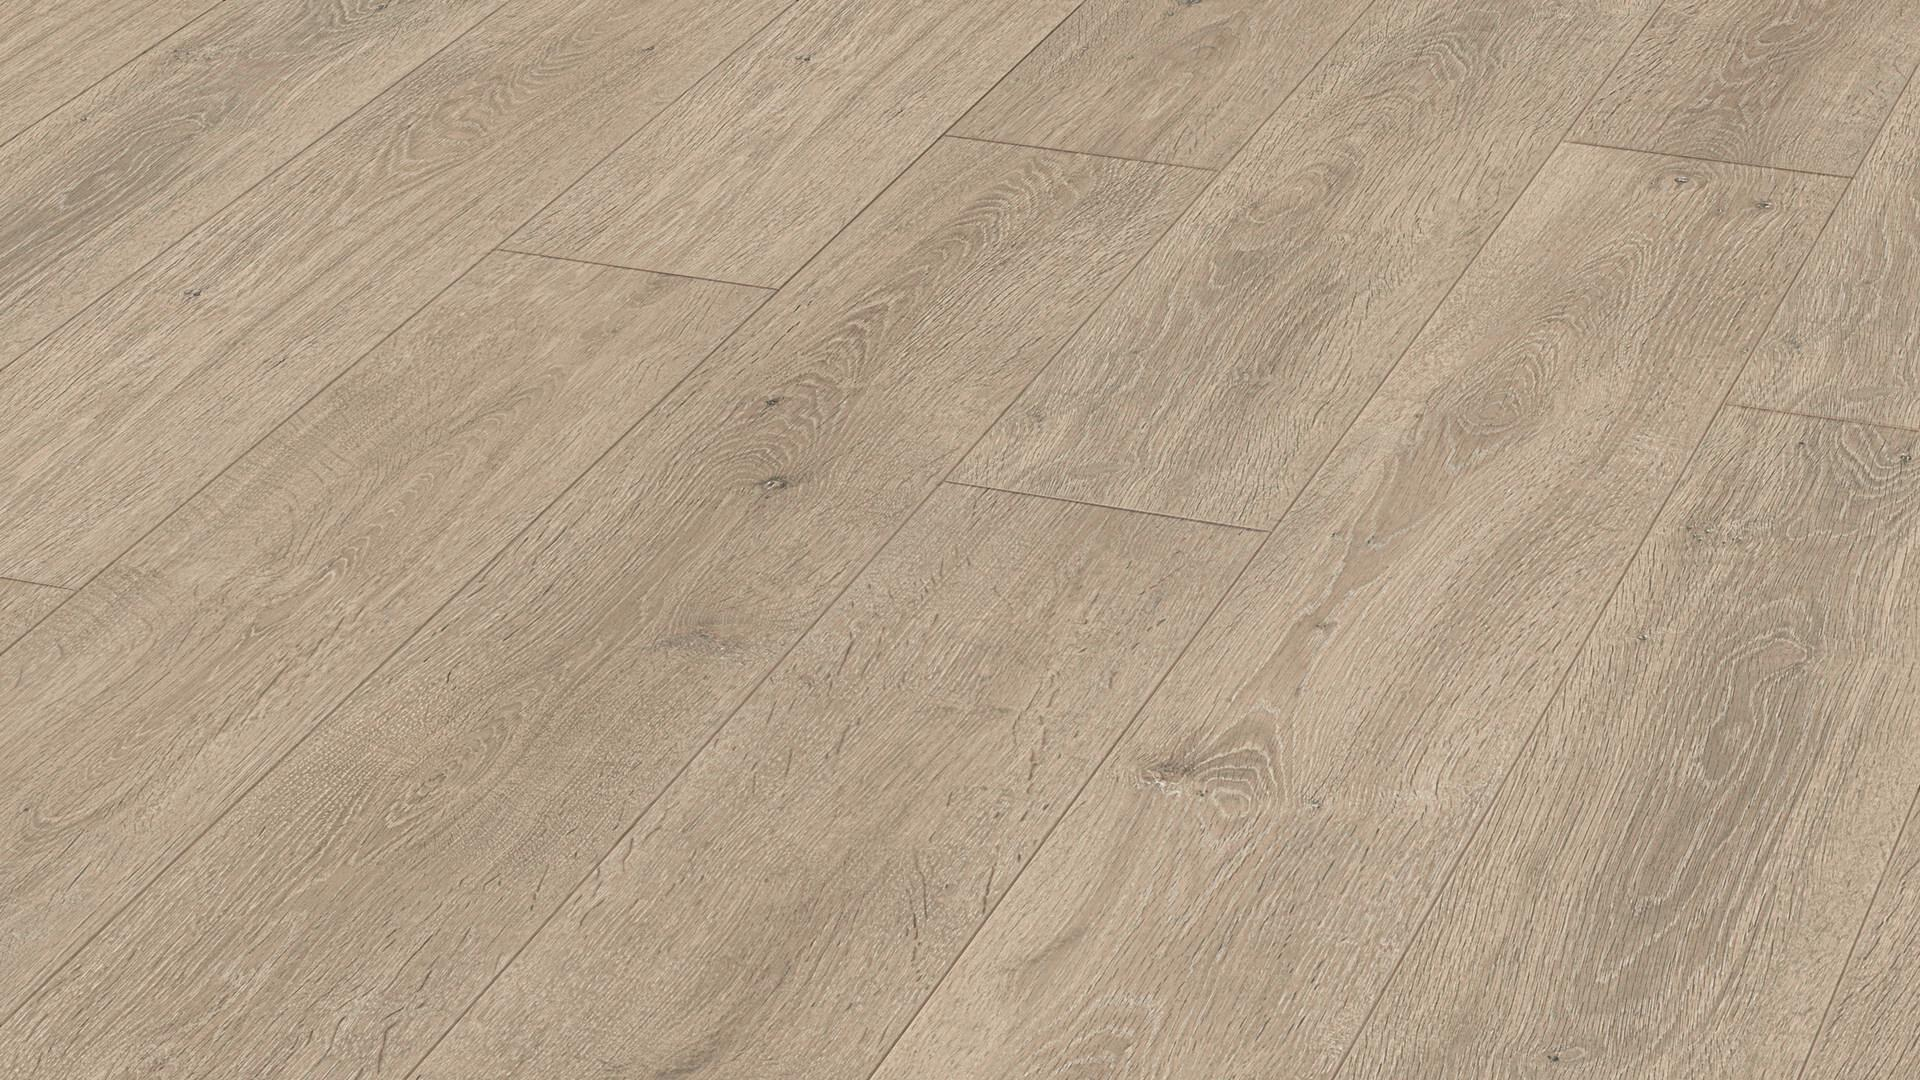 Laminate flooring MeisterDesign. laminate LD 150 Habanera oak 6429